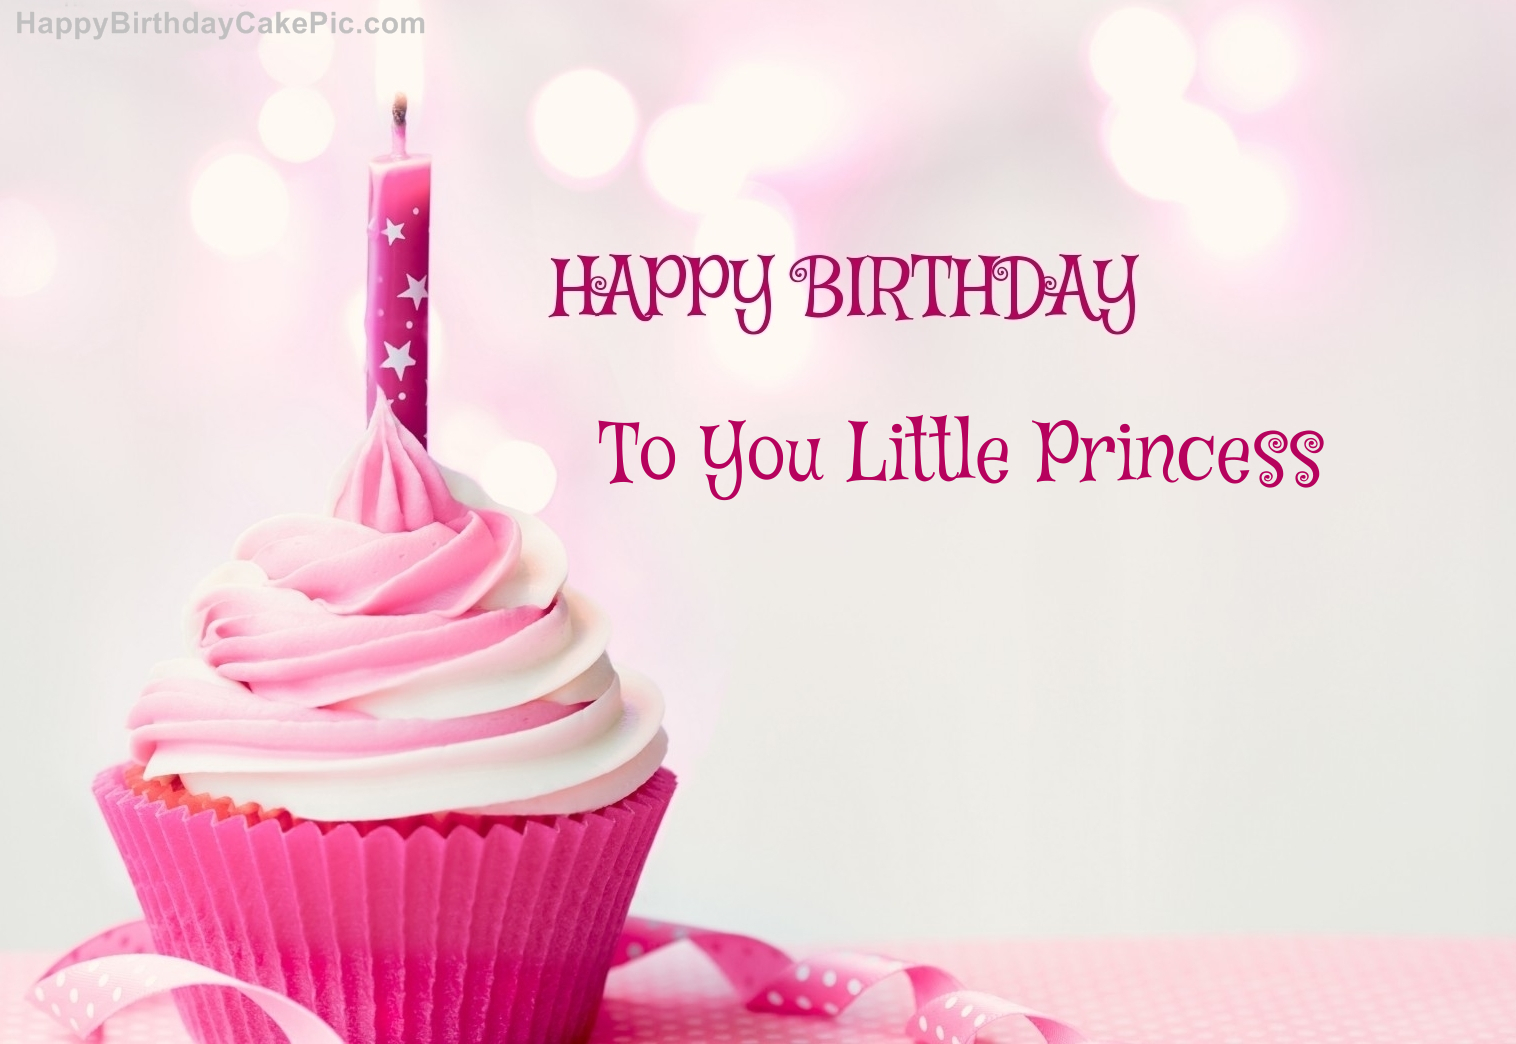 Happy Birthday Cupcake Candle Pink Cake For To You Little